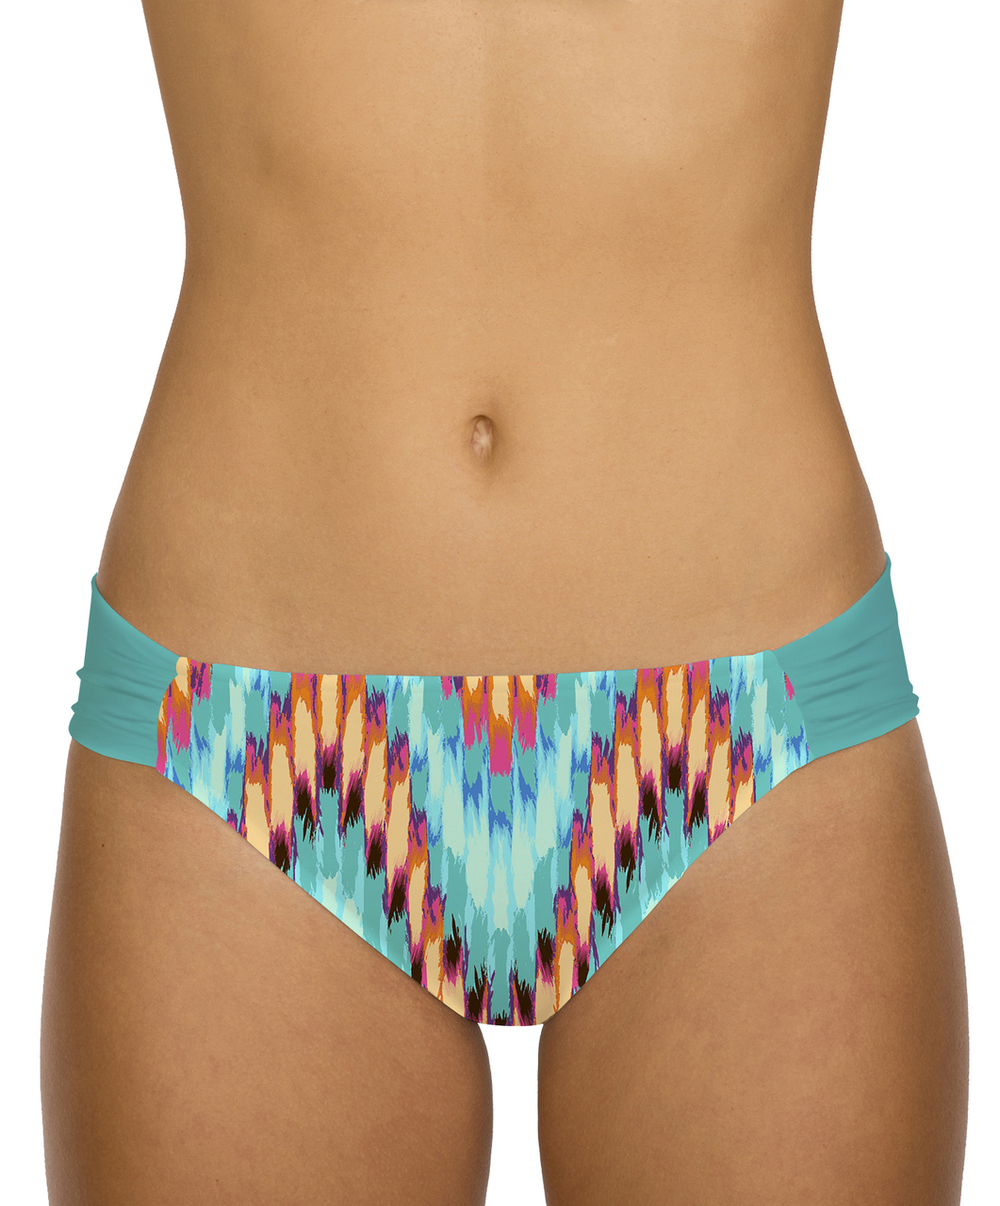 Sunsets swimwear tidal wave 20B side shirred pant. Best Swimwear. $50.